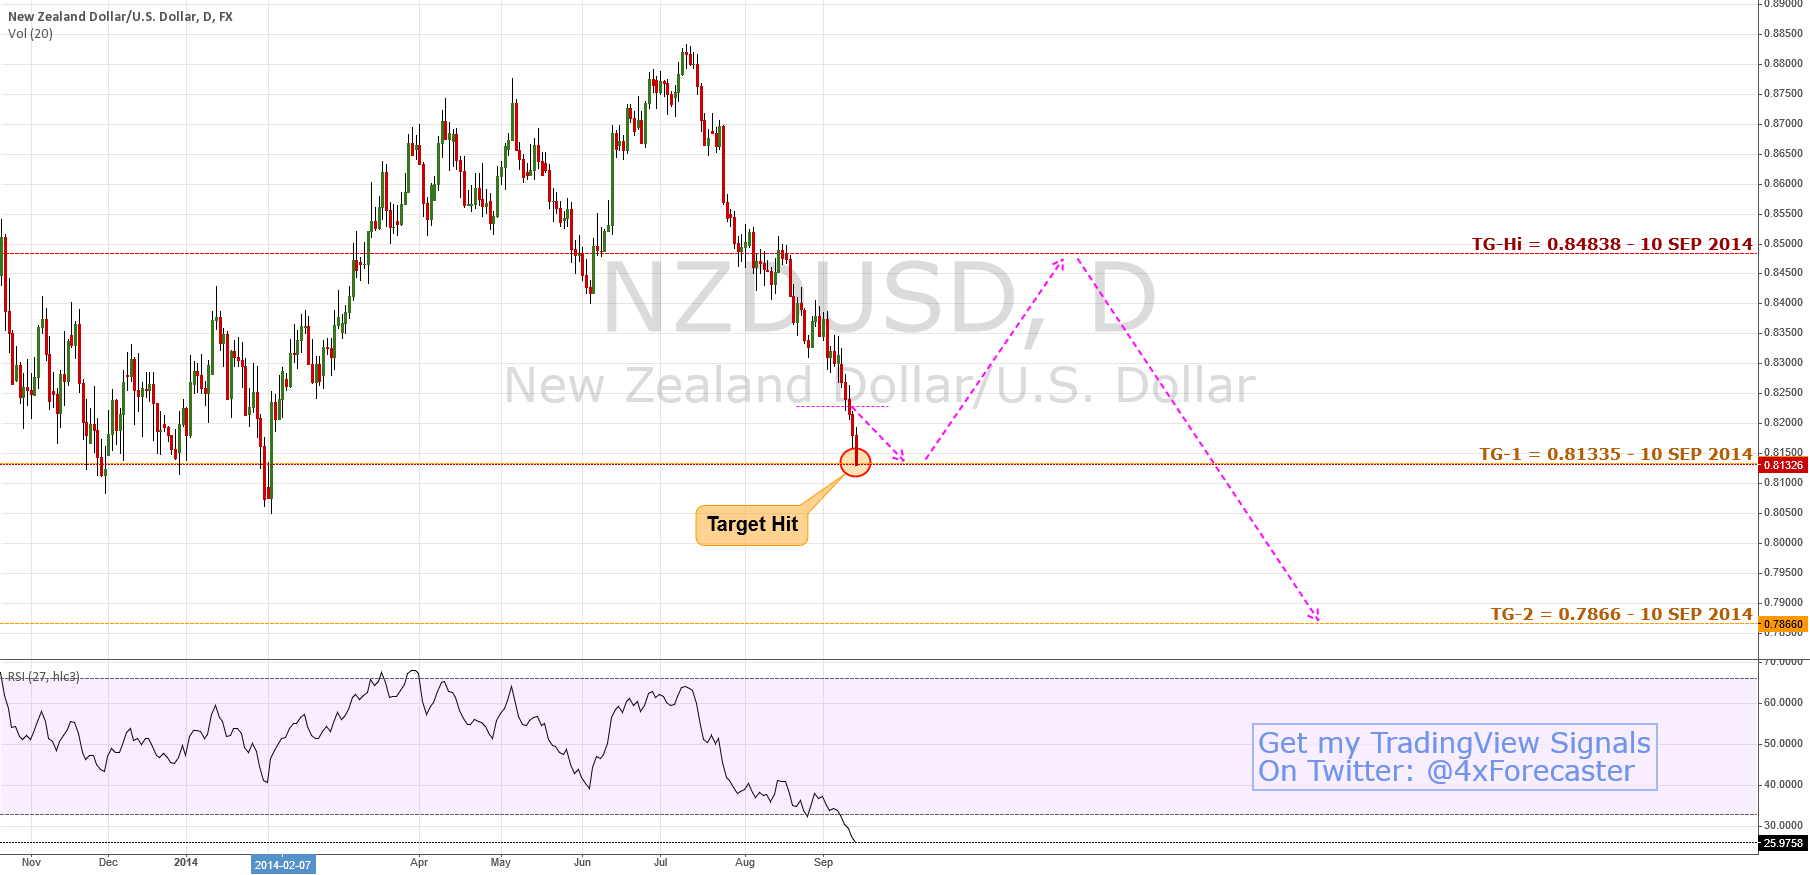 $NZD Hit Target; Next: Sees 0.84838 Reaction | #RBNX $USD #forex